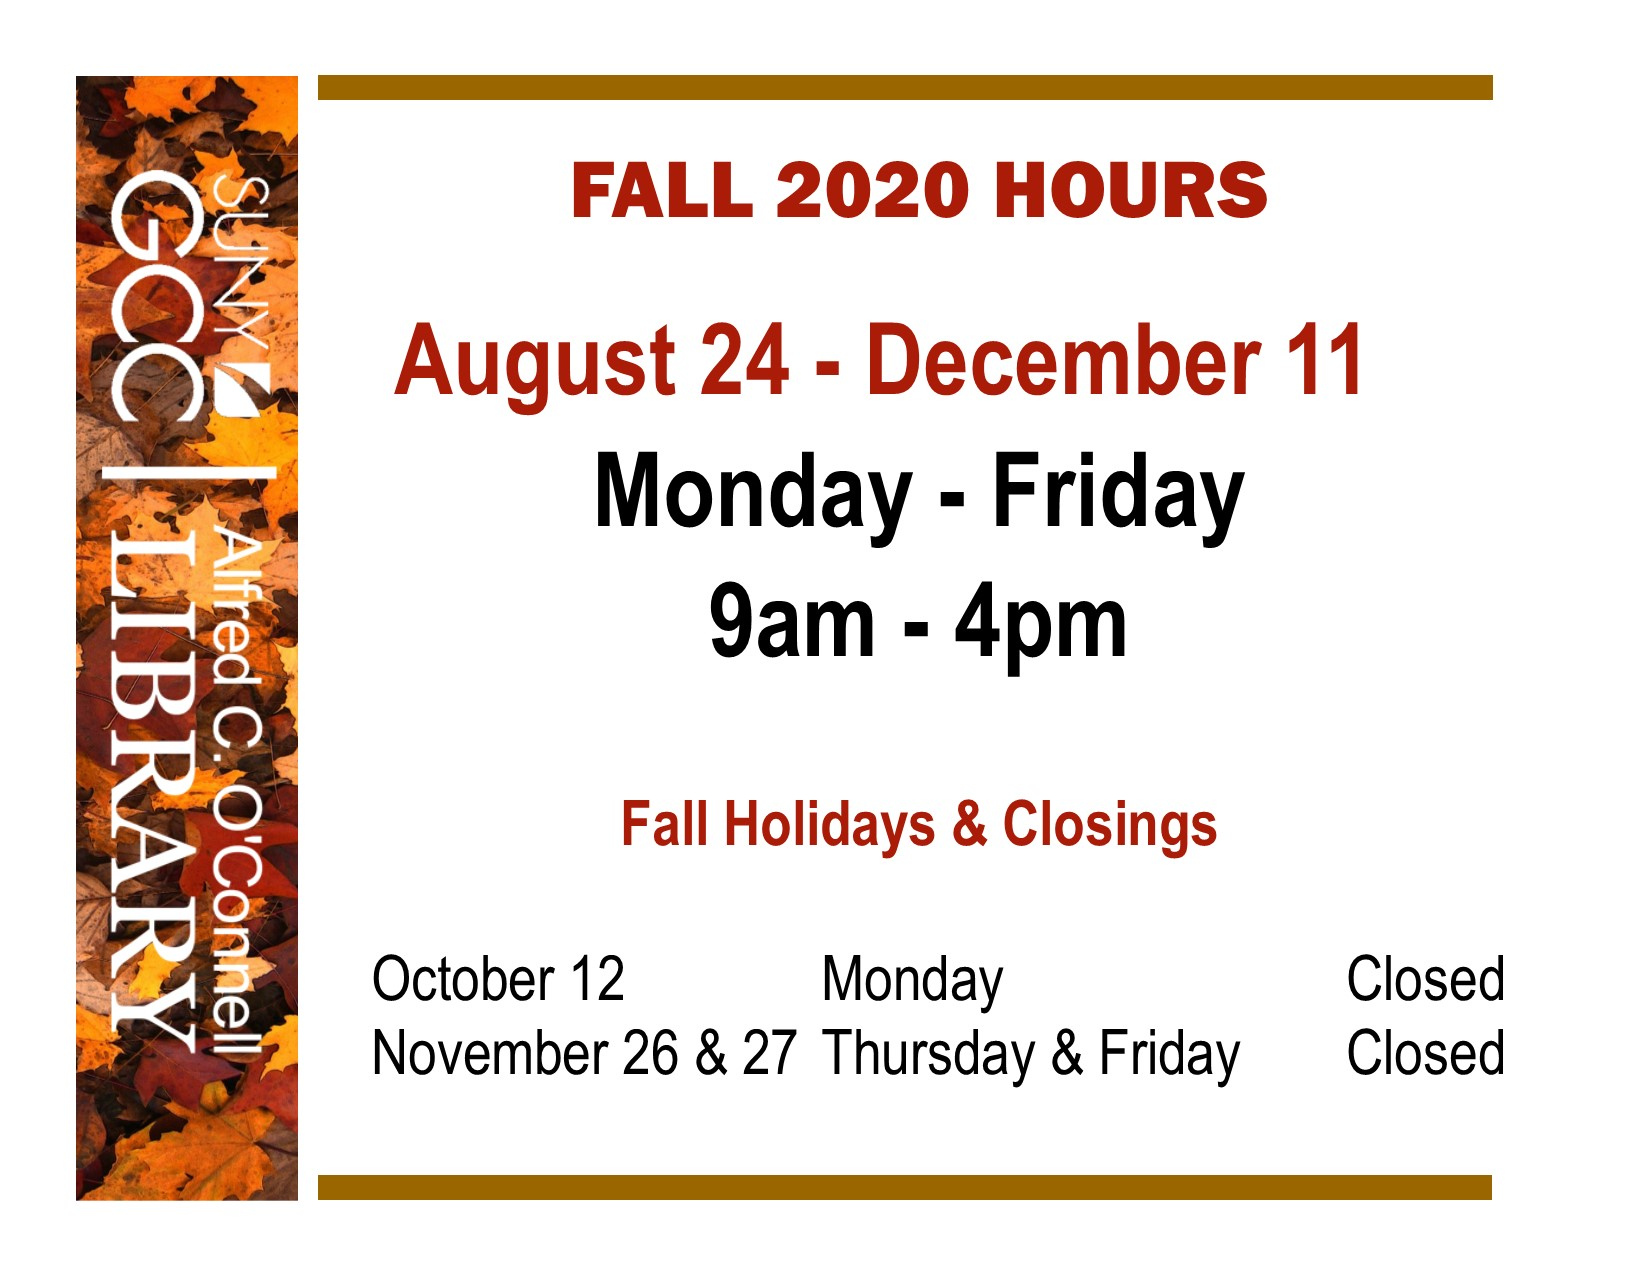 Library Hours during Fall 2020: M-F 9-4p.m. except Monday September 7, October 12, and November 26 and 27. Also available via chat or email by appointment